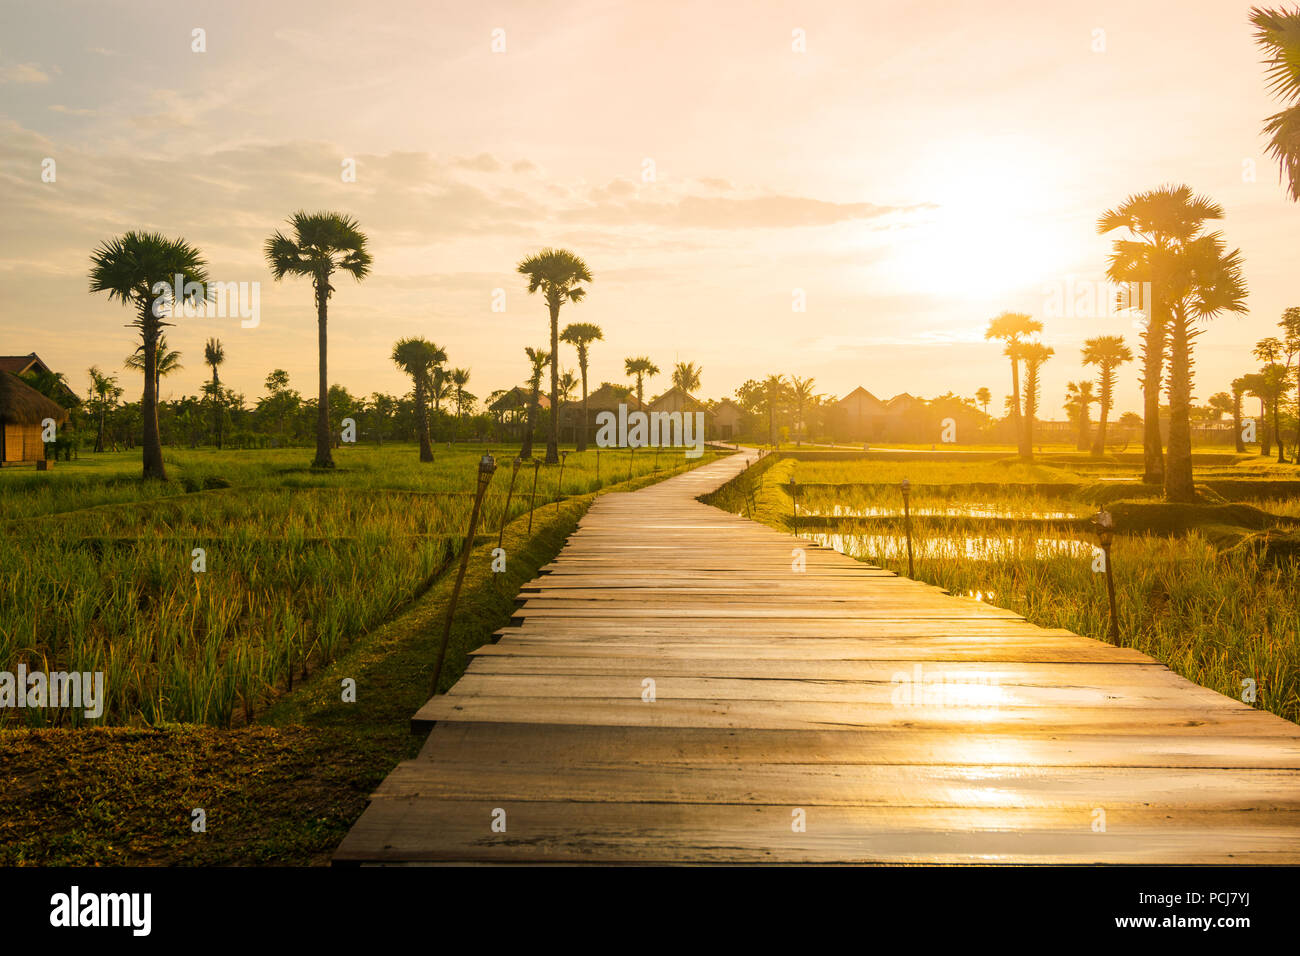 Wooden deck causeway bridge running through grass field and palm tree plantation in Siem Reap (Angkor), Cambodia. - Stock Image